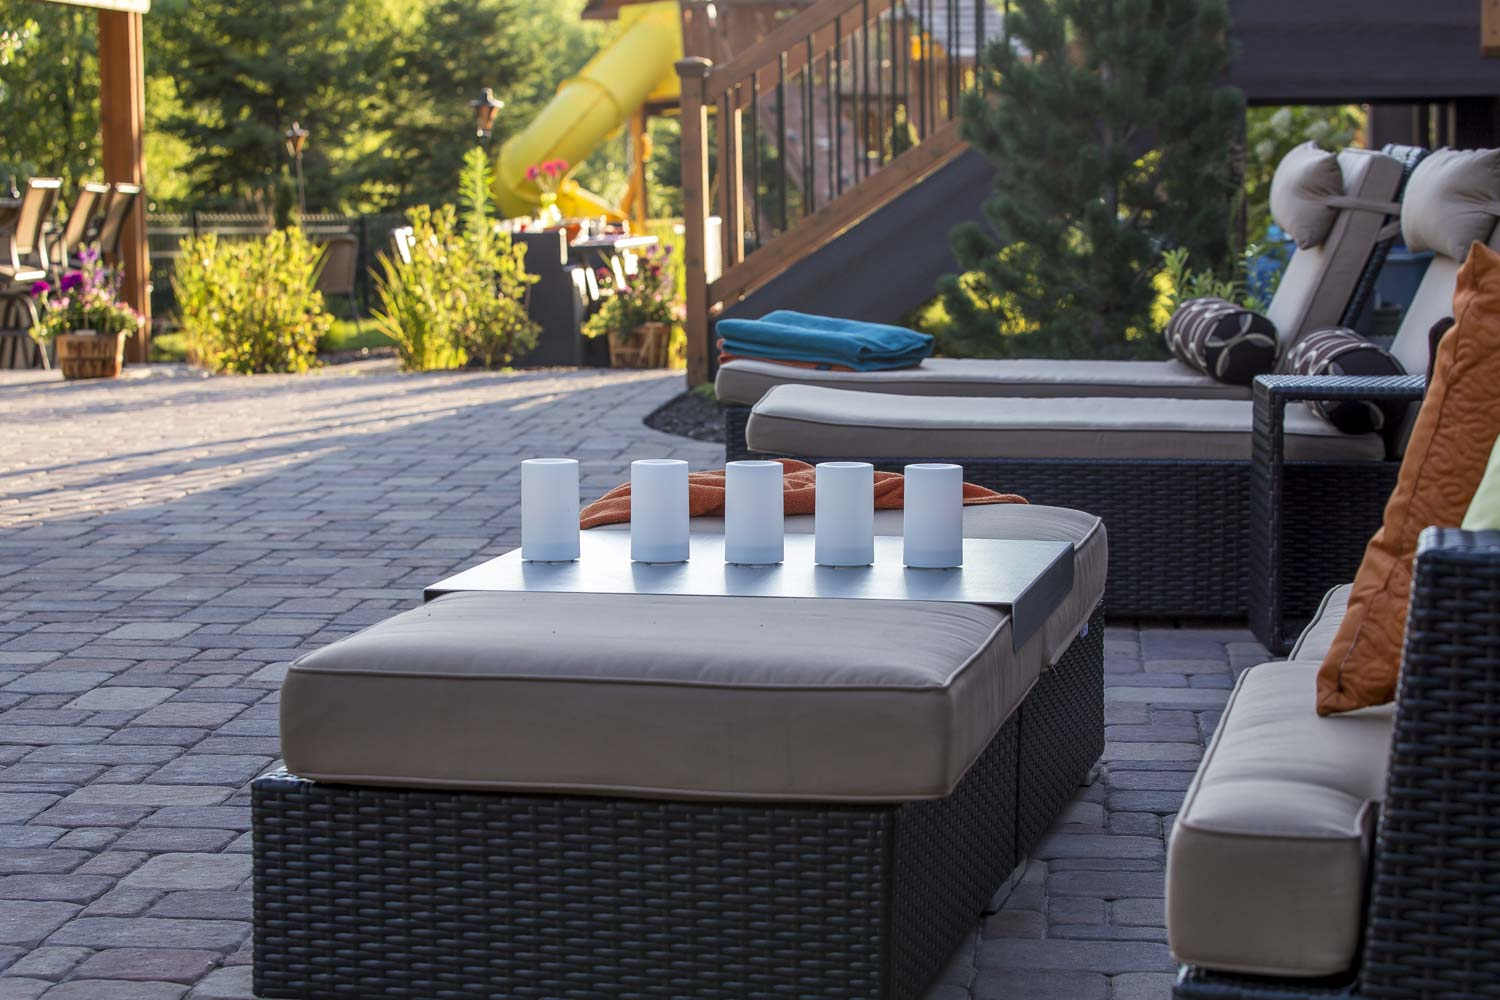 Sophisticated Outdoor furniture on patio minnesota